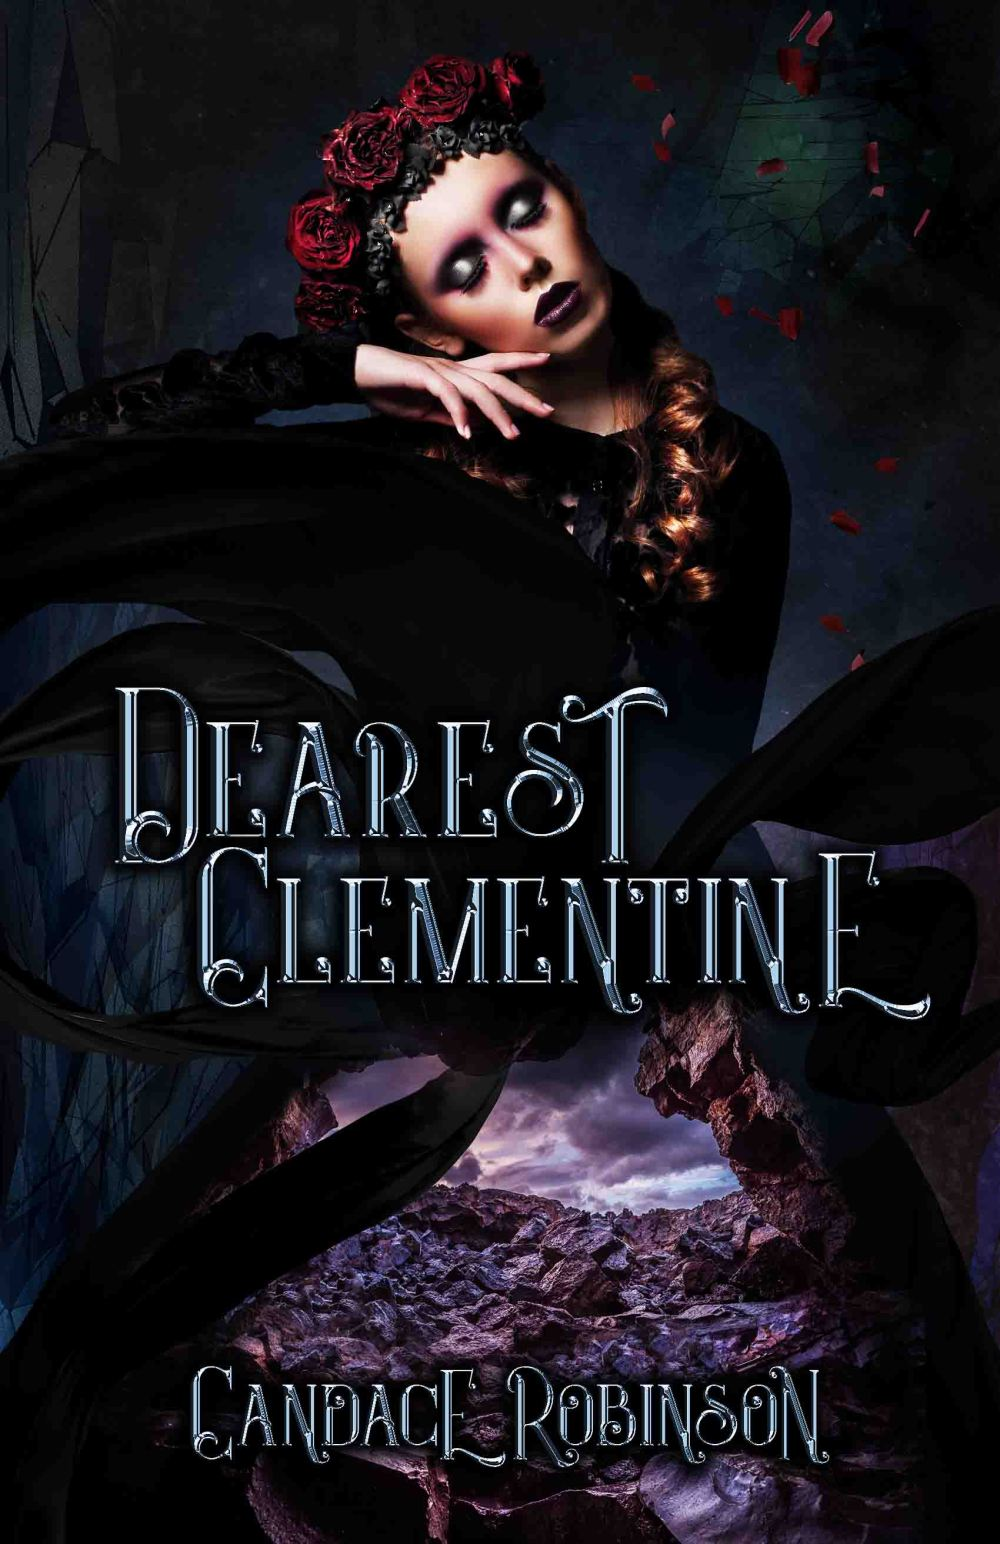 Dearest Clementine by Candace Robinson (Ebook)